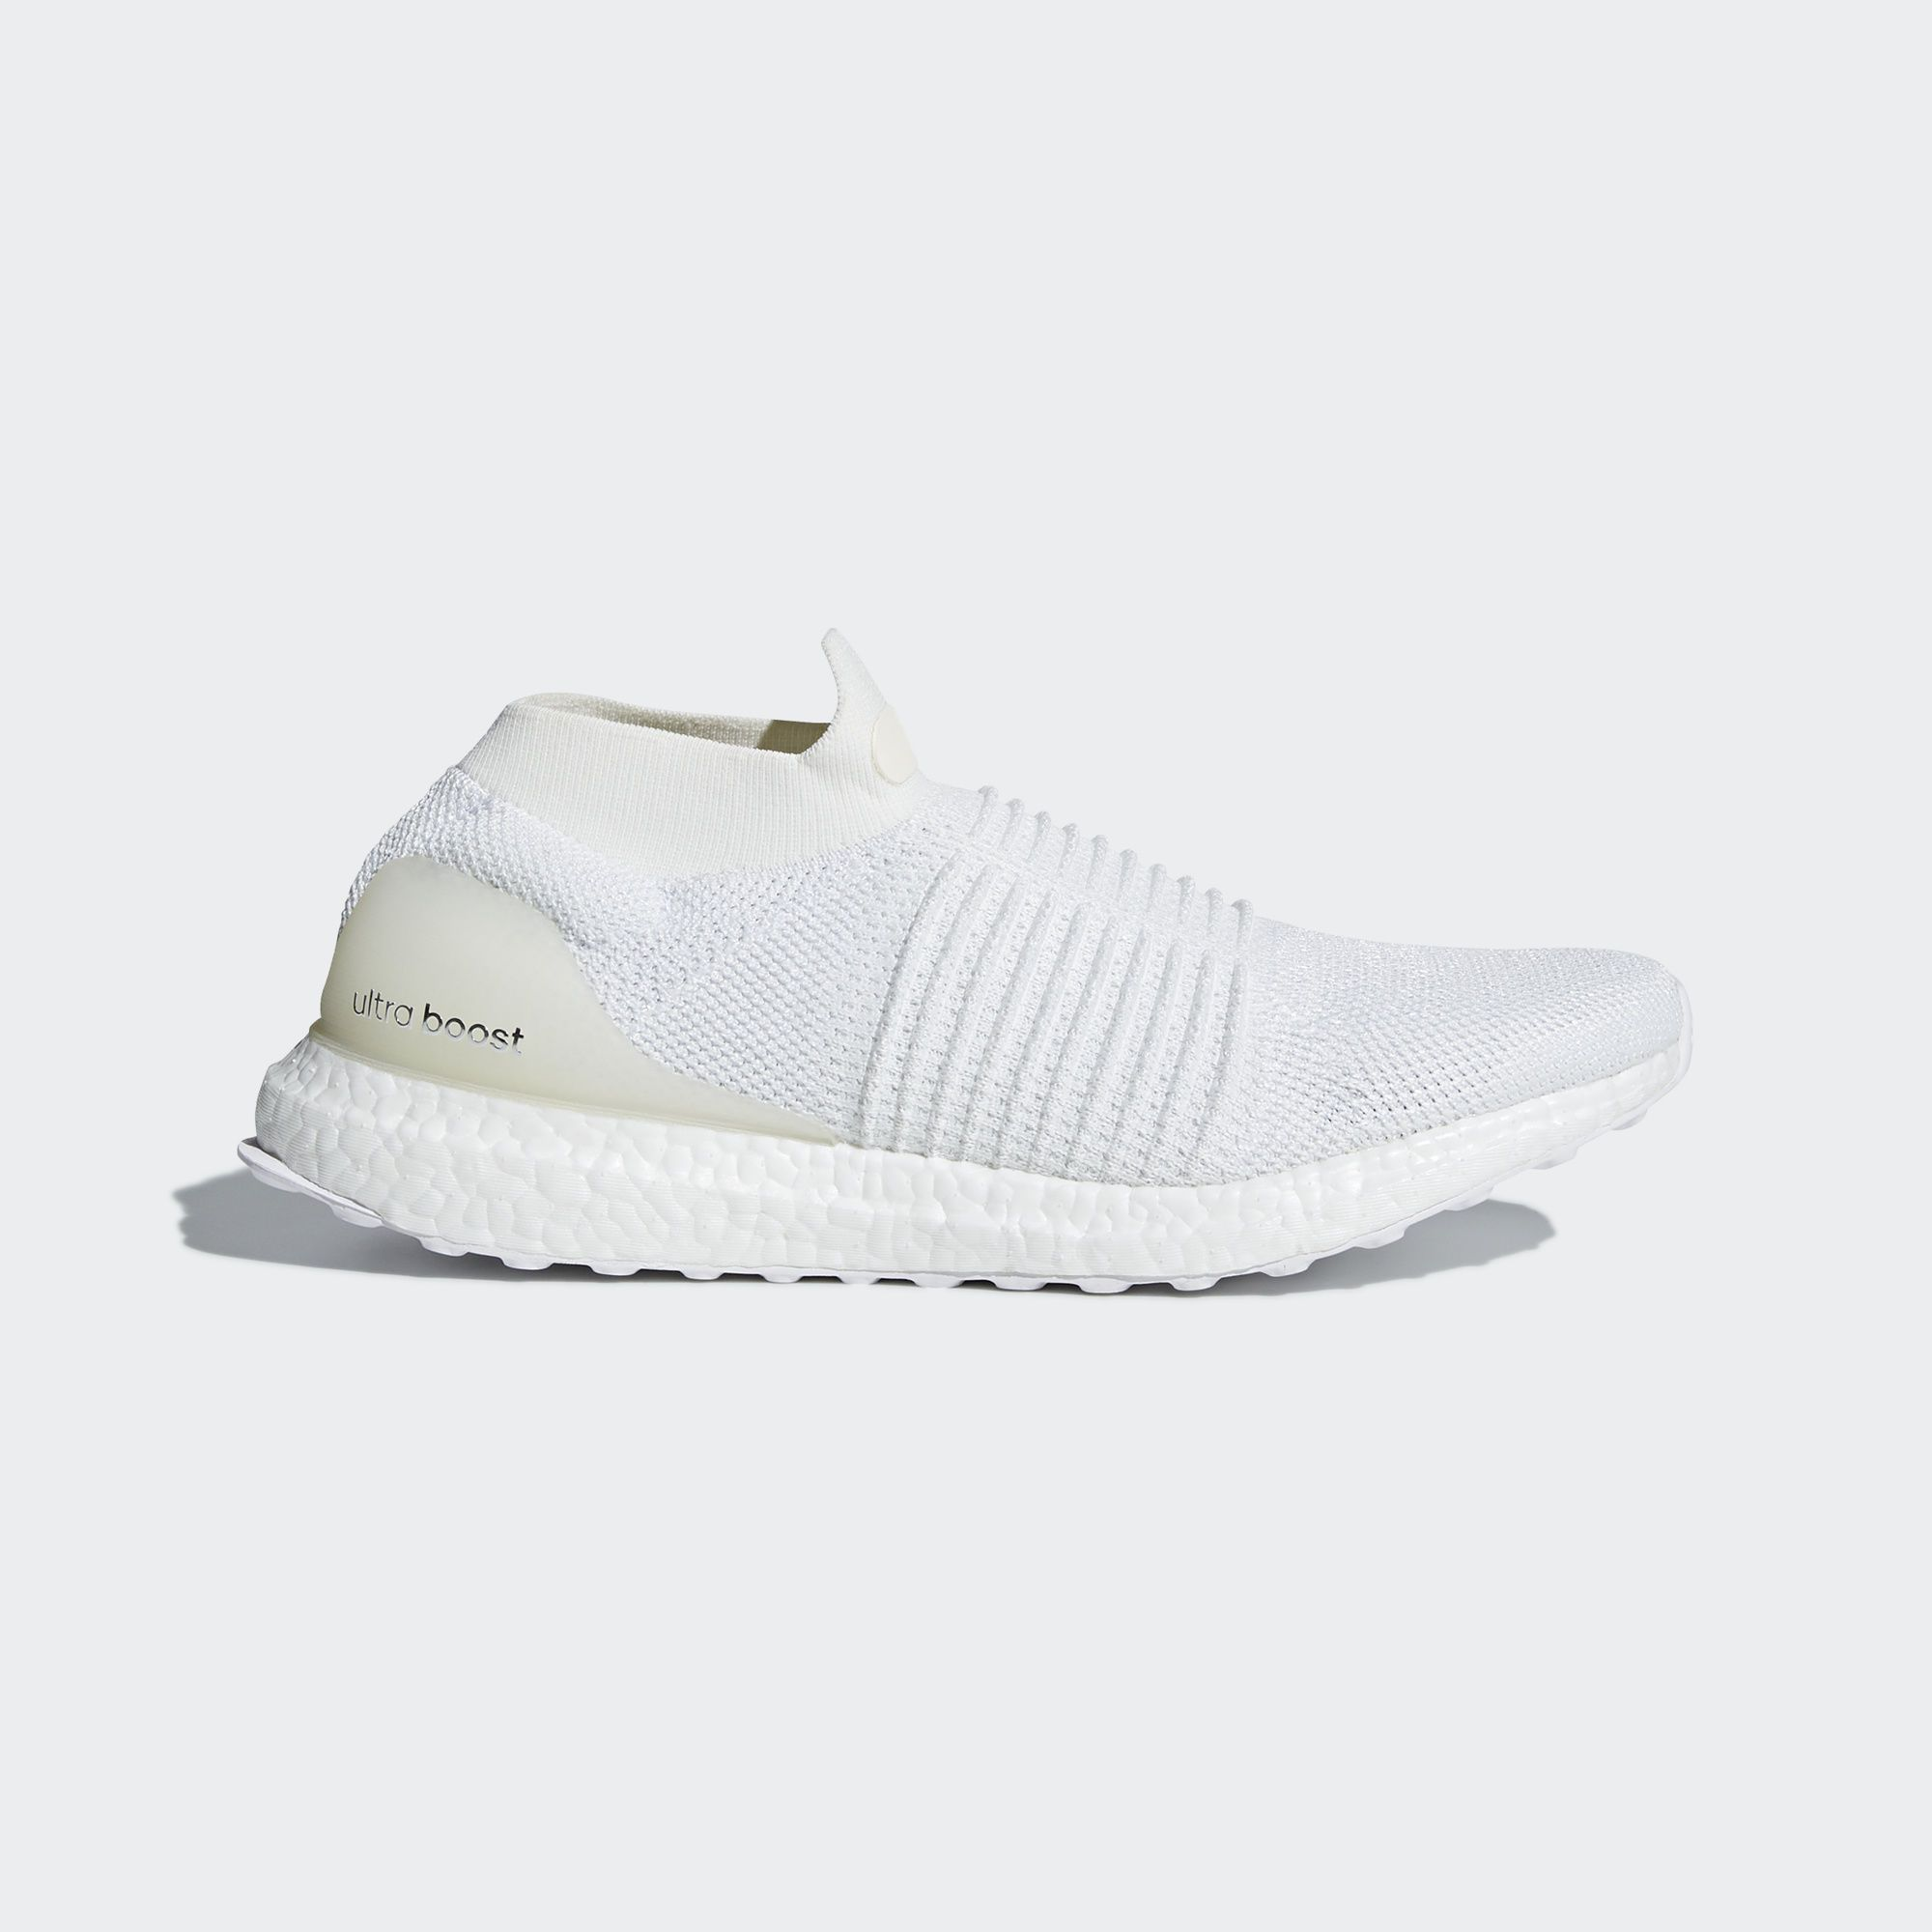 Ultraboost Laceless Shoes White Mens in 2020 | All white